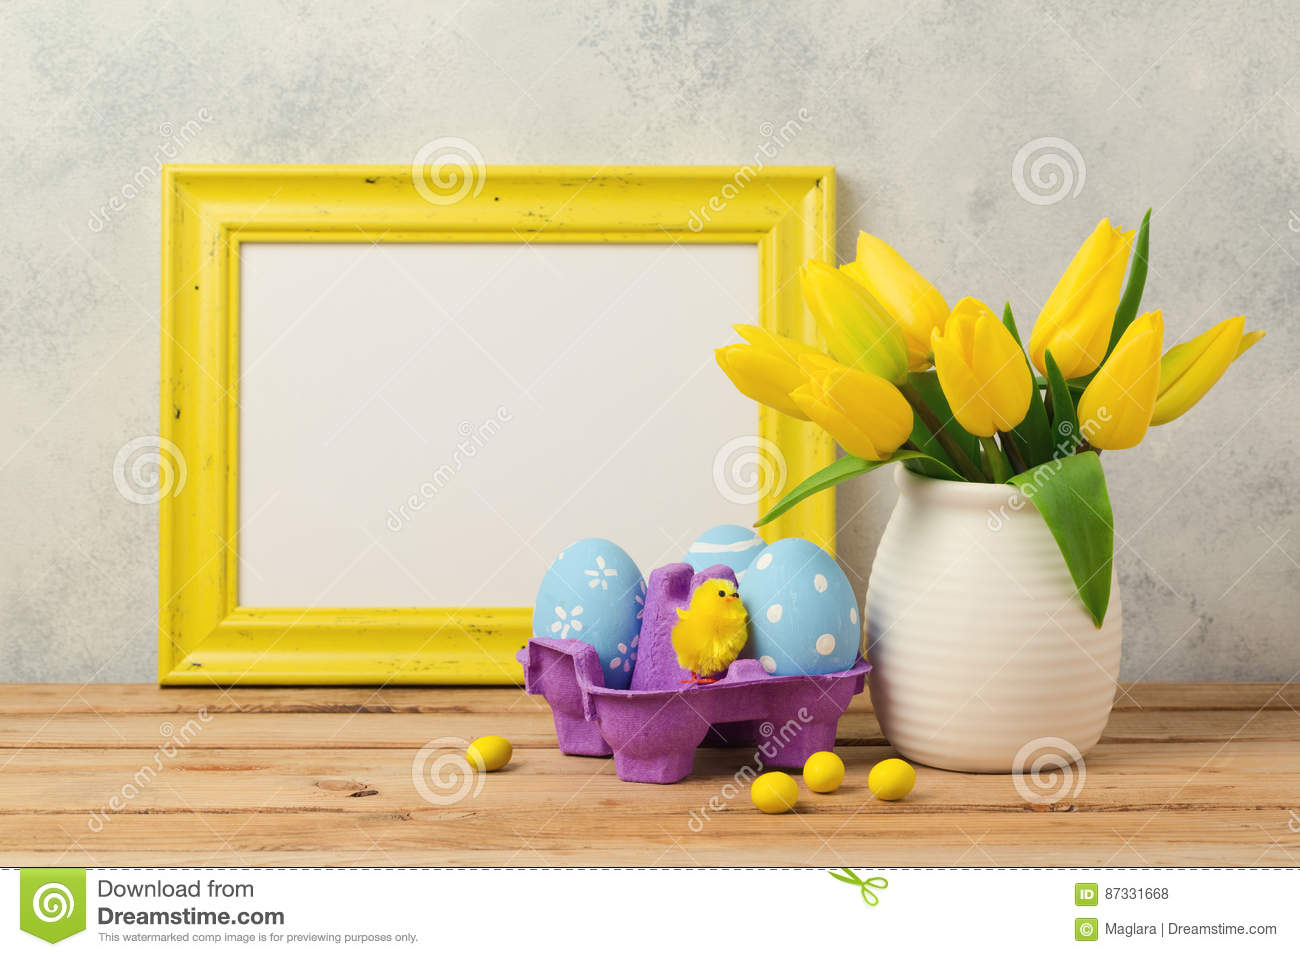 Easter holiday concept with tulip flowers, eggs decorations and blank photo frame